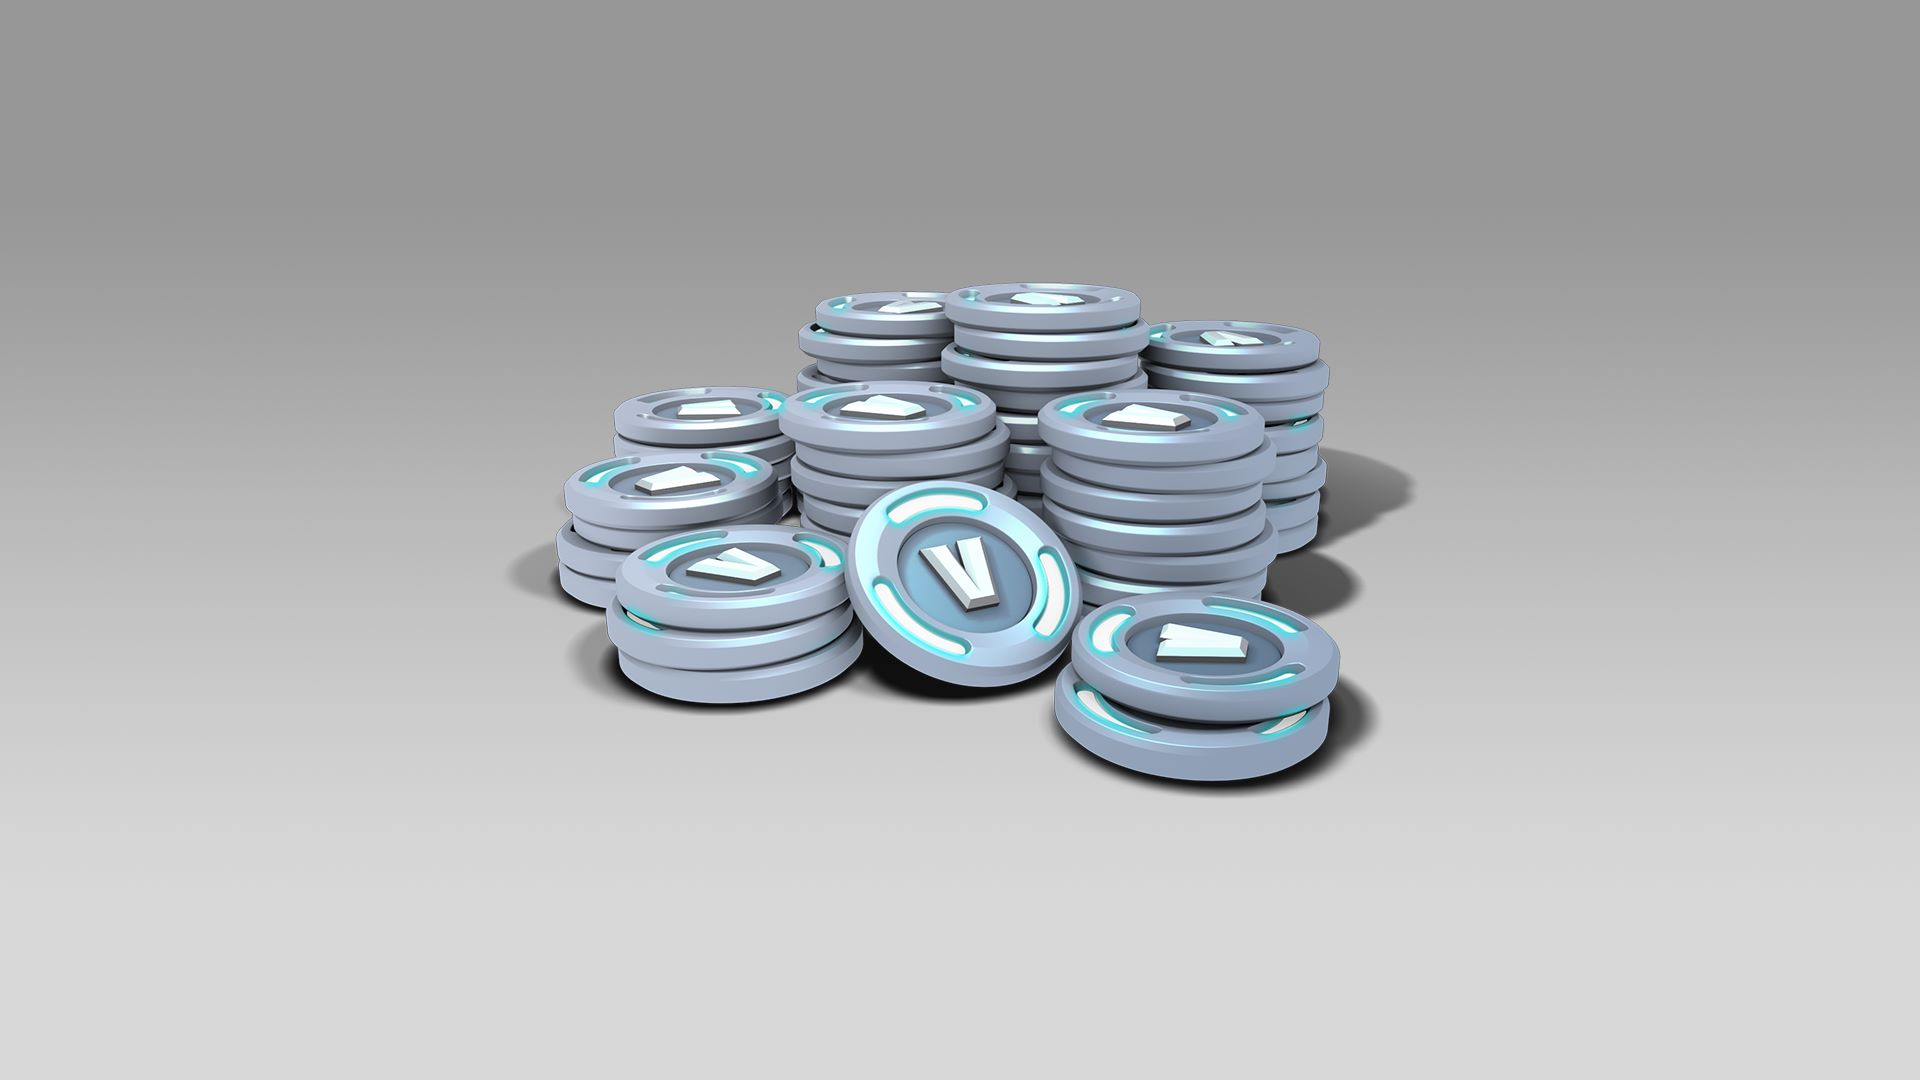 V Bucks Kaufen Wie Fortnite Partners With Nvidia Geforce And Release An